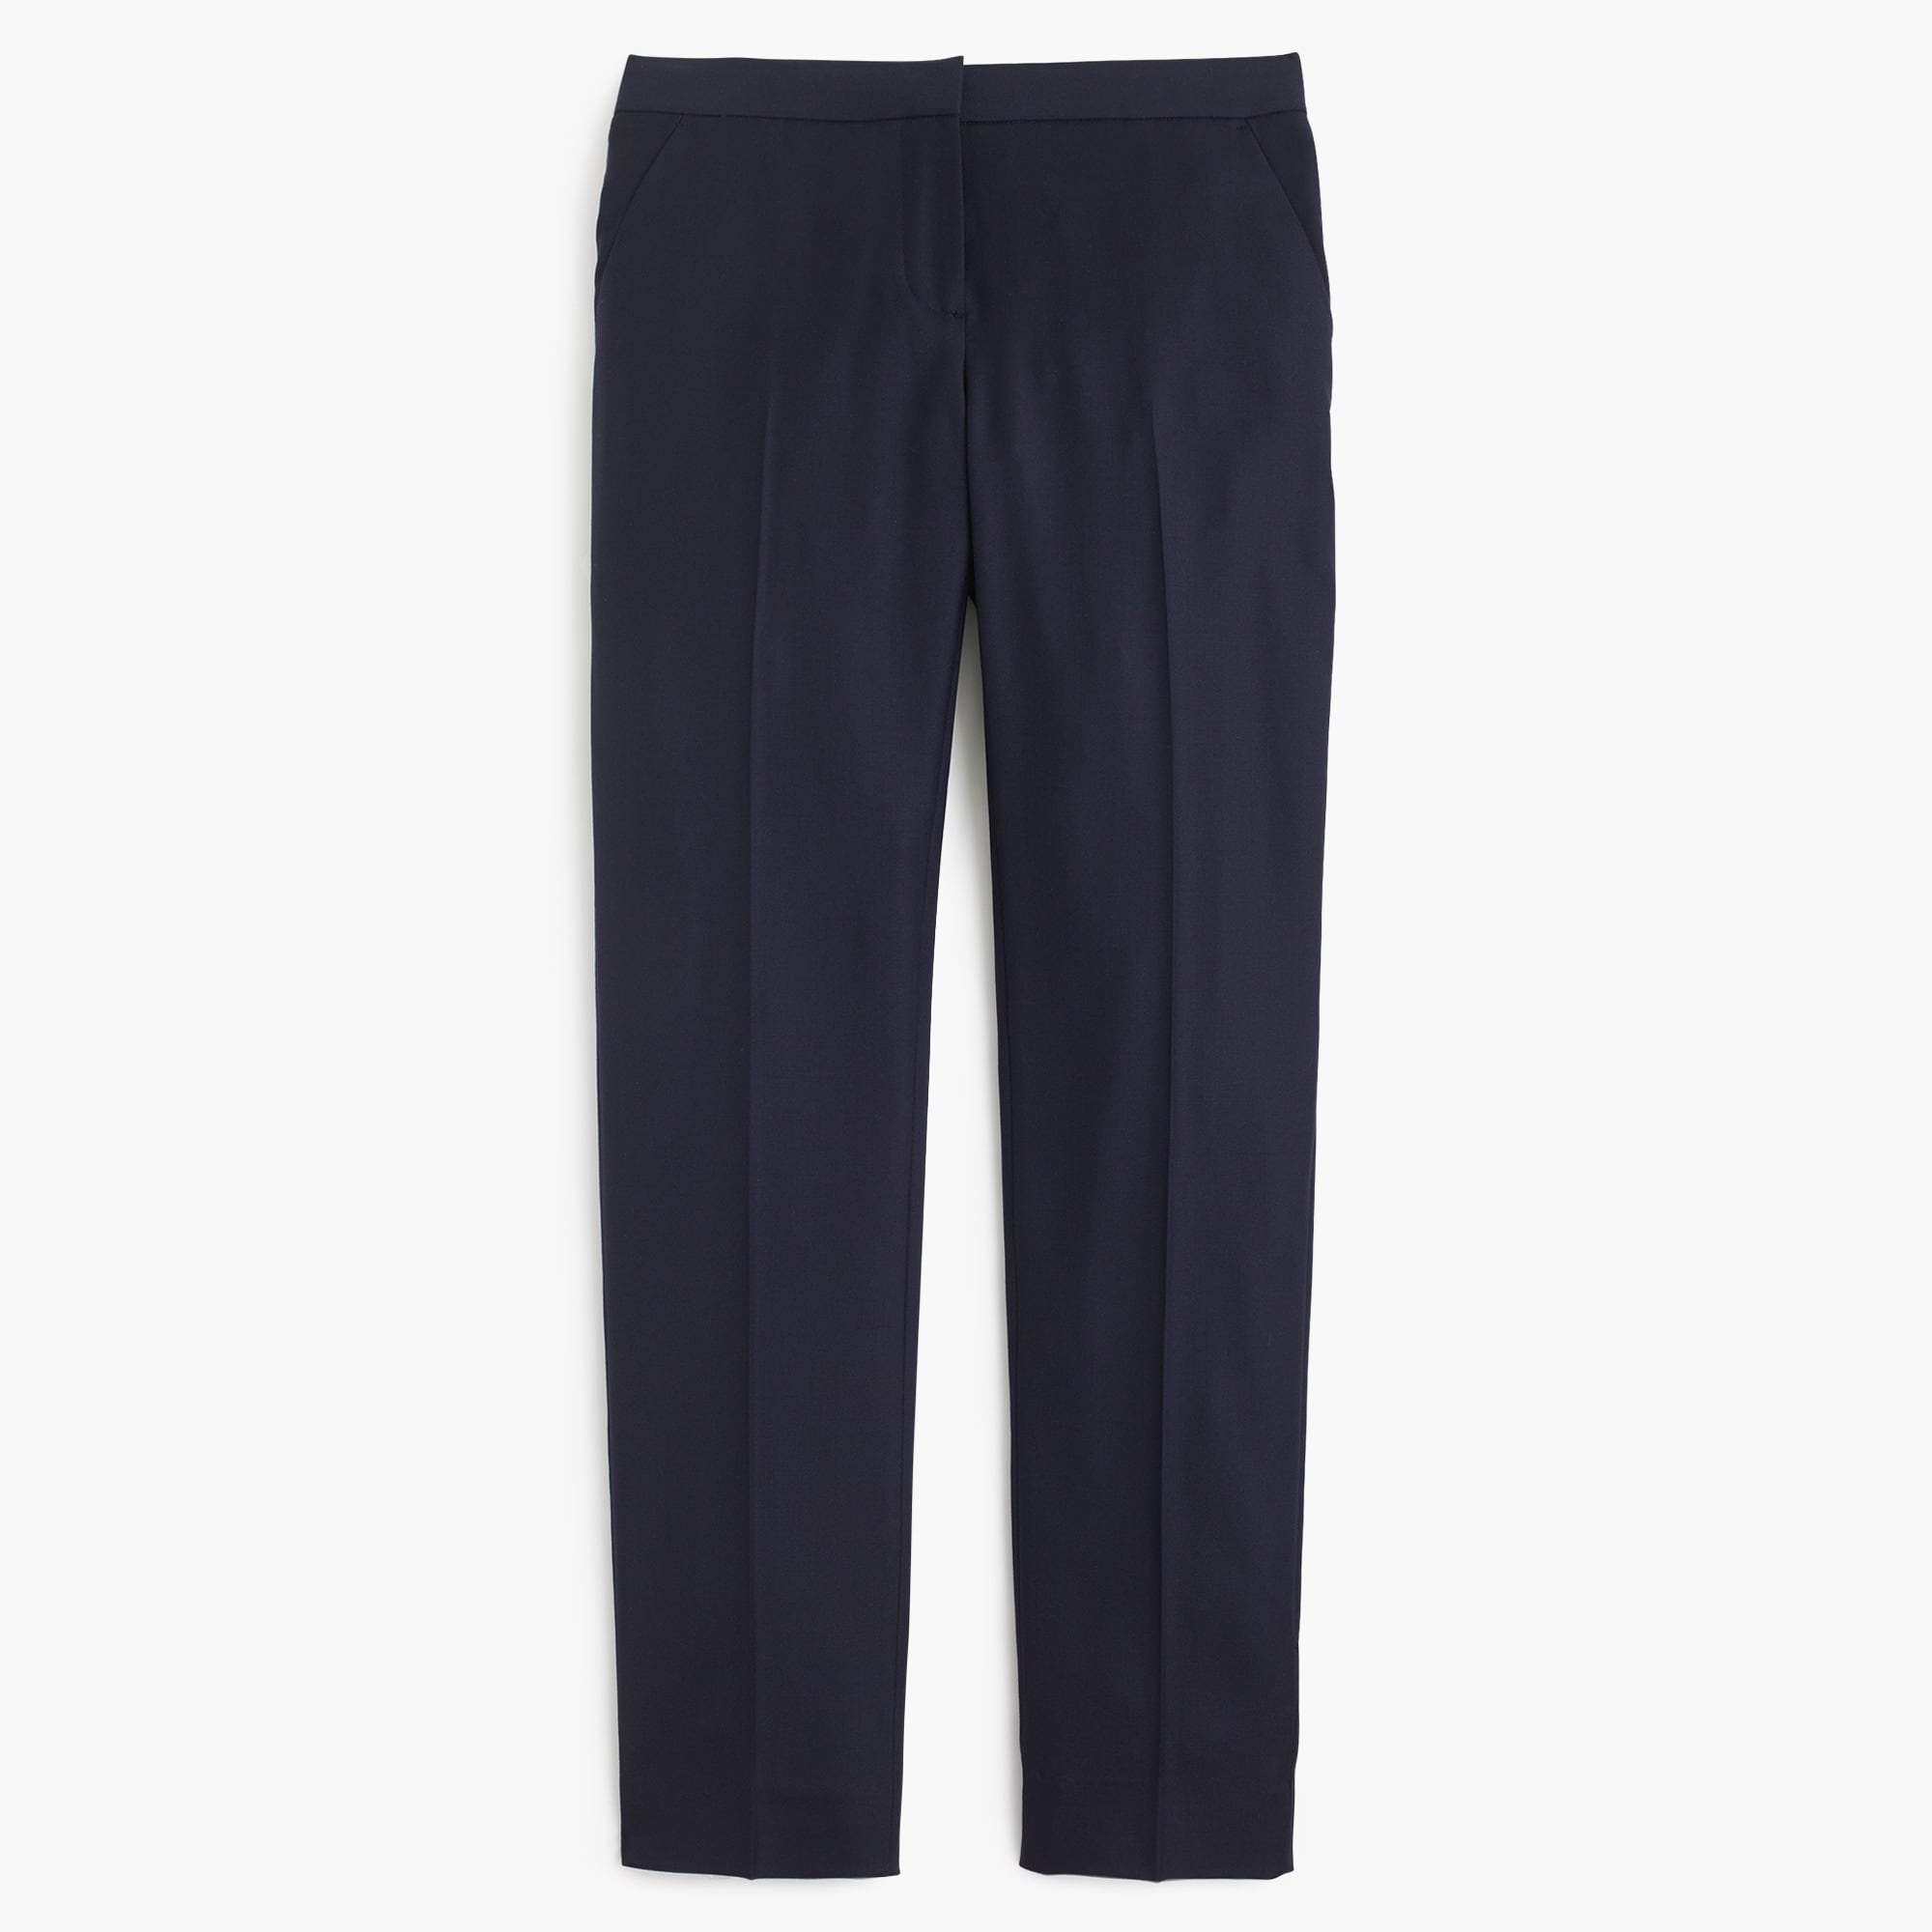 Image 2 for Petite Paley pant in Italian Super 120s wool